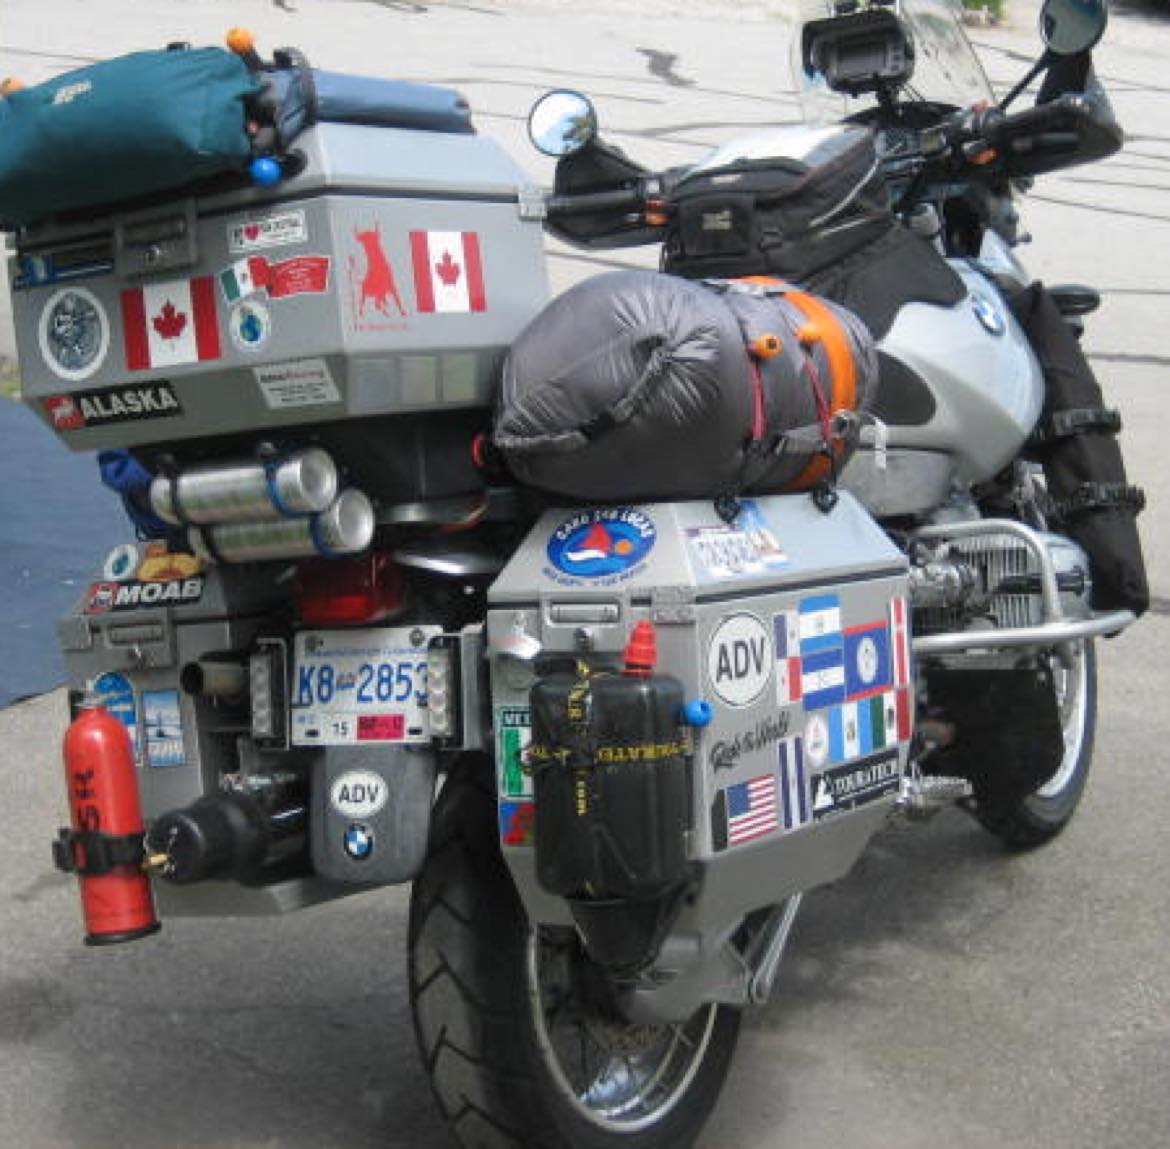 ODYSSEY II panniers and top box fitted to BMW R1150GS Adventure